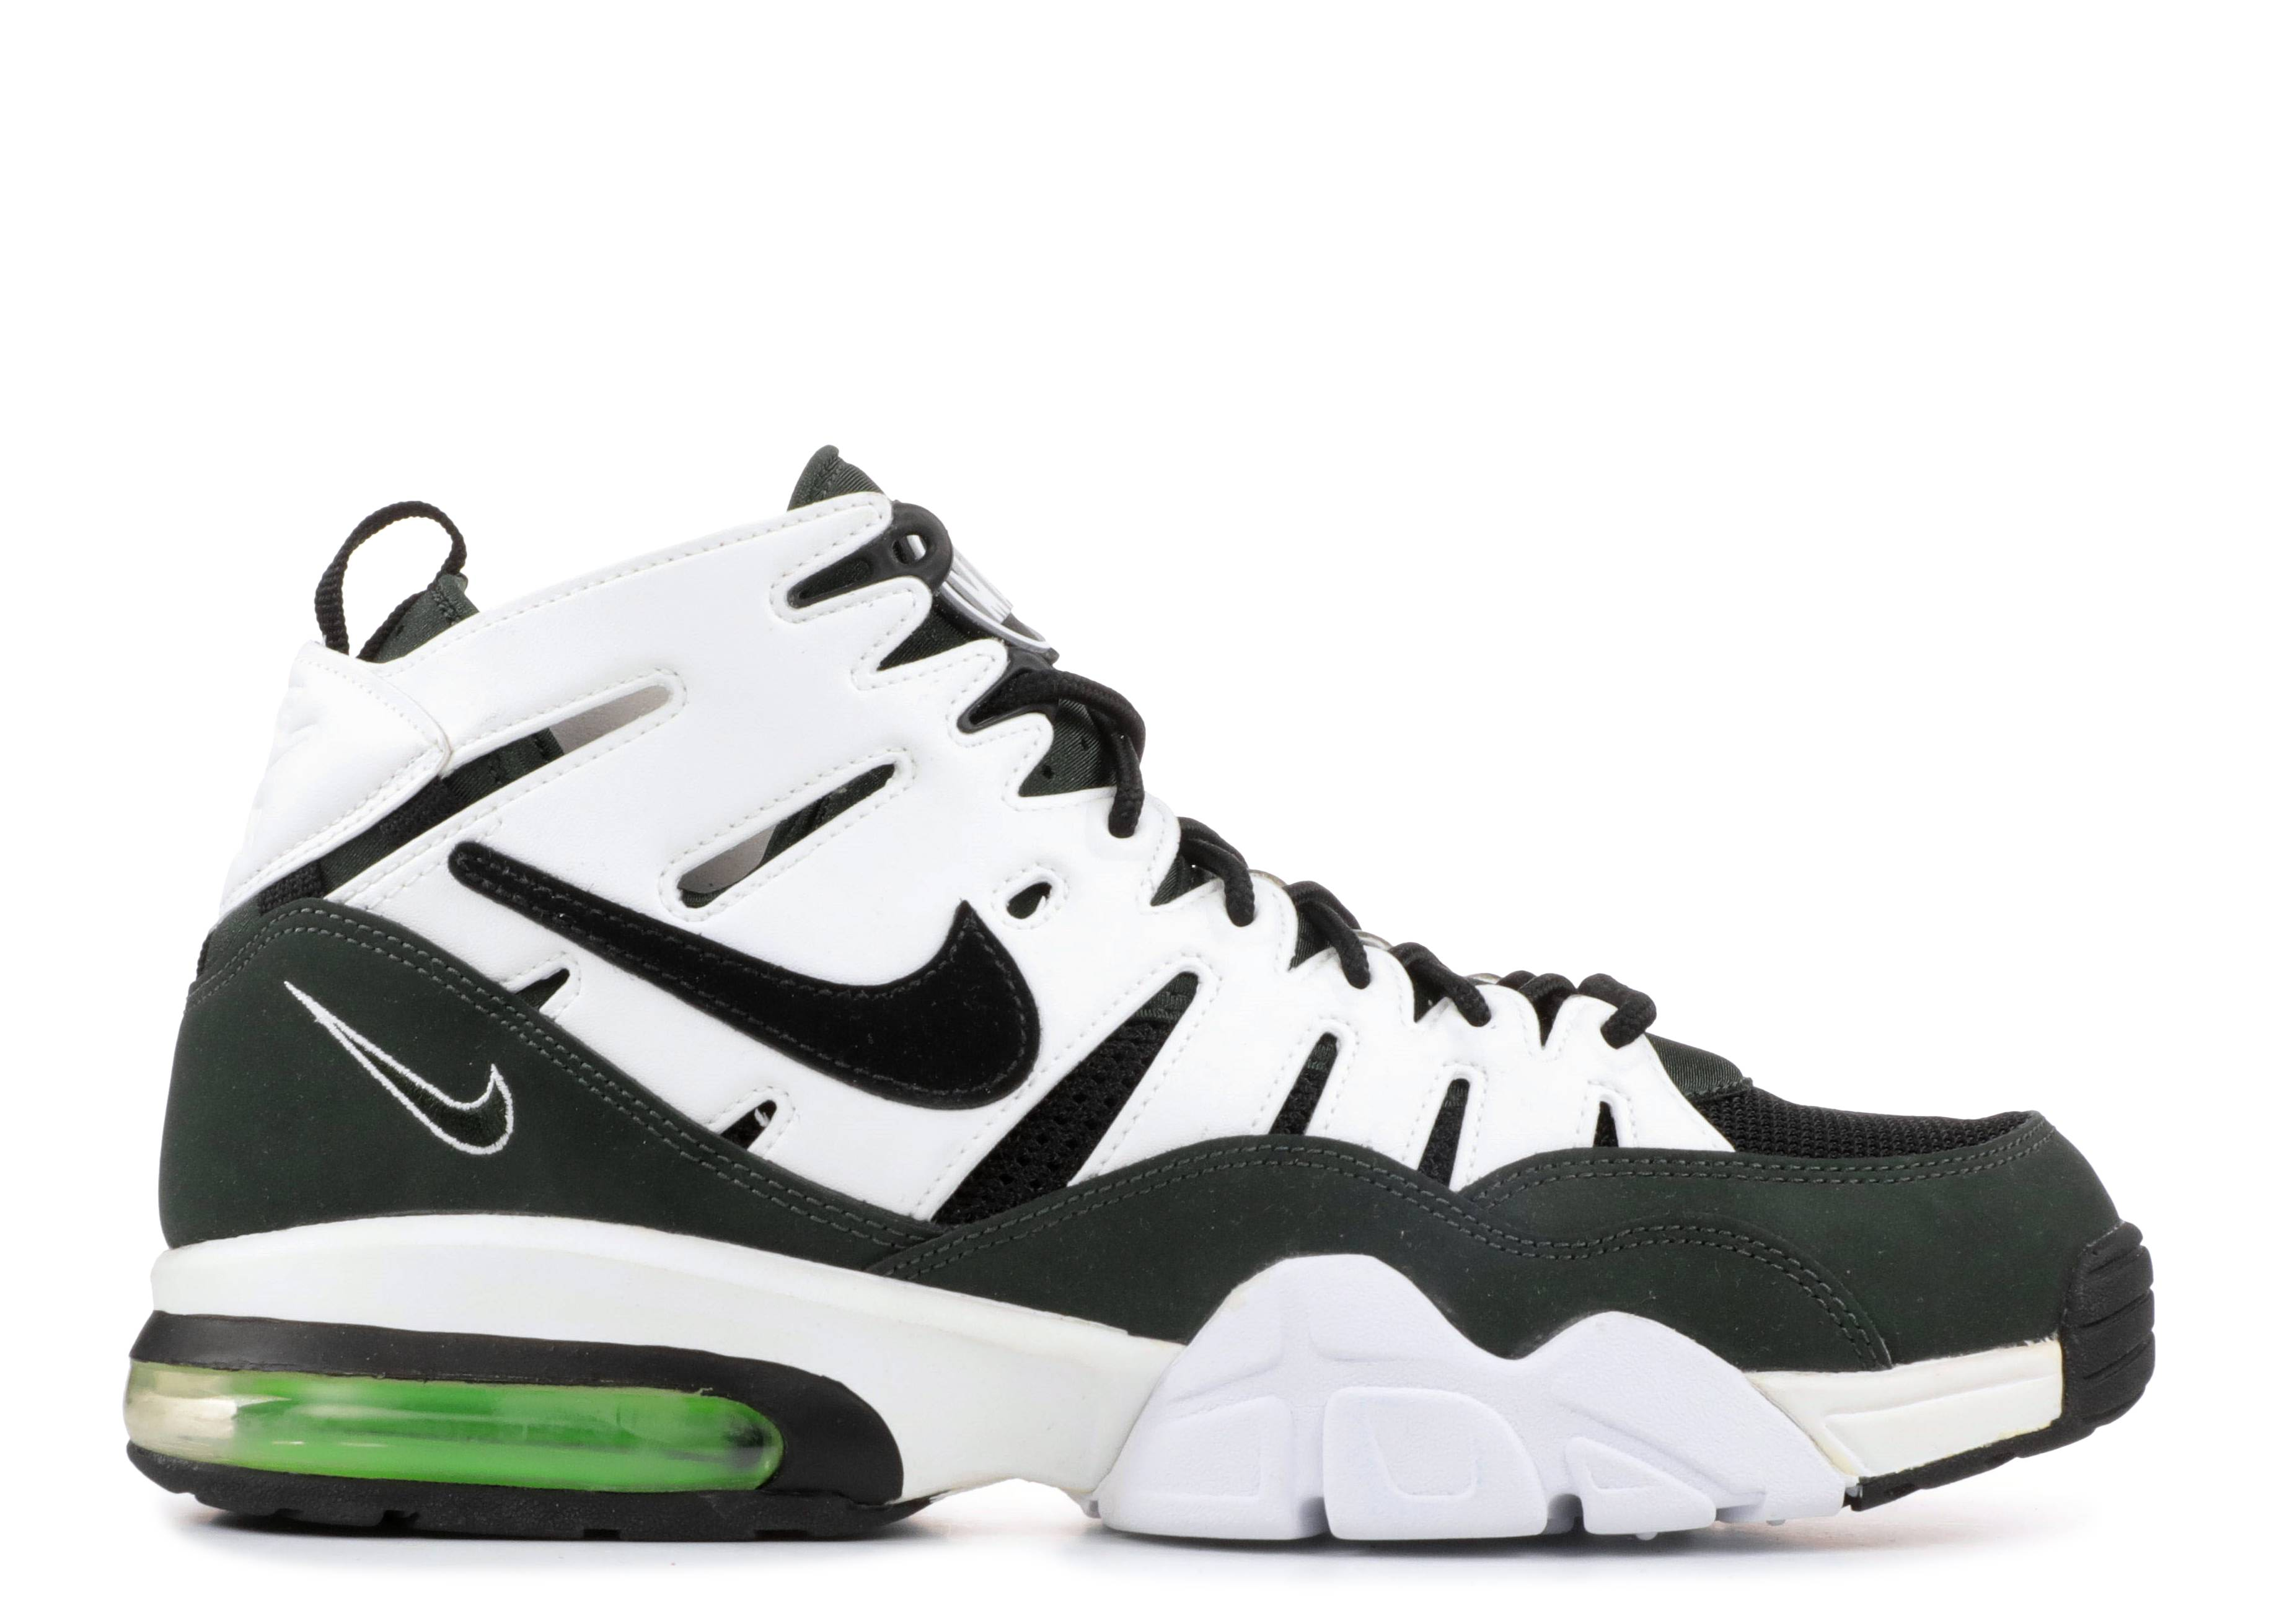 8751254c71 Air Trainer Max 2 94 - Nike - 312543 101 - white/black-outdoor green ...